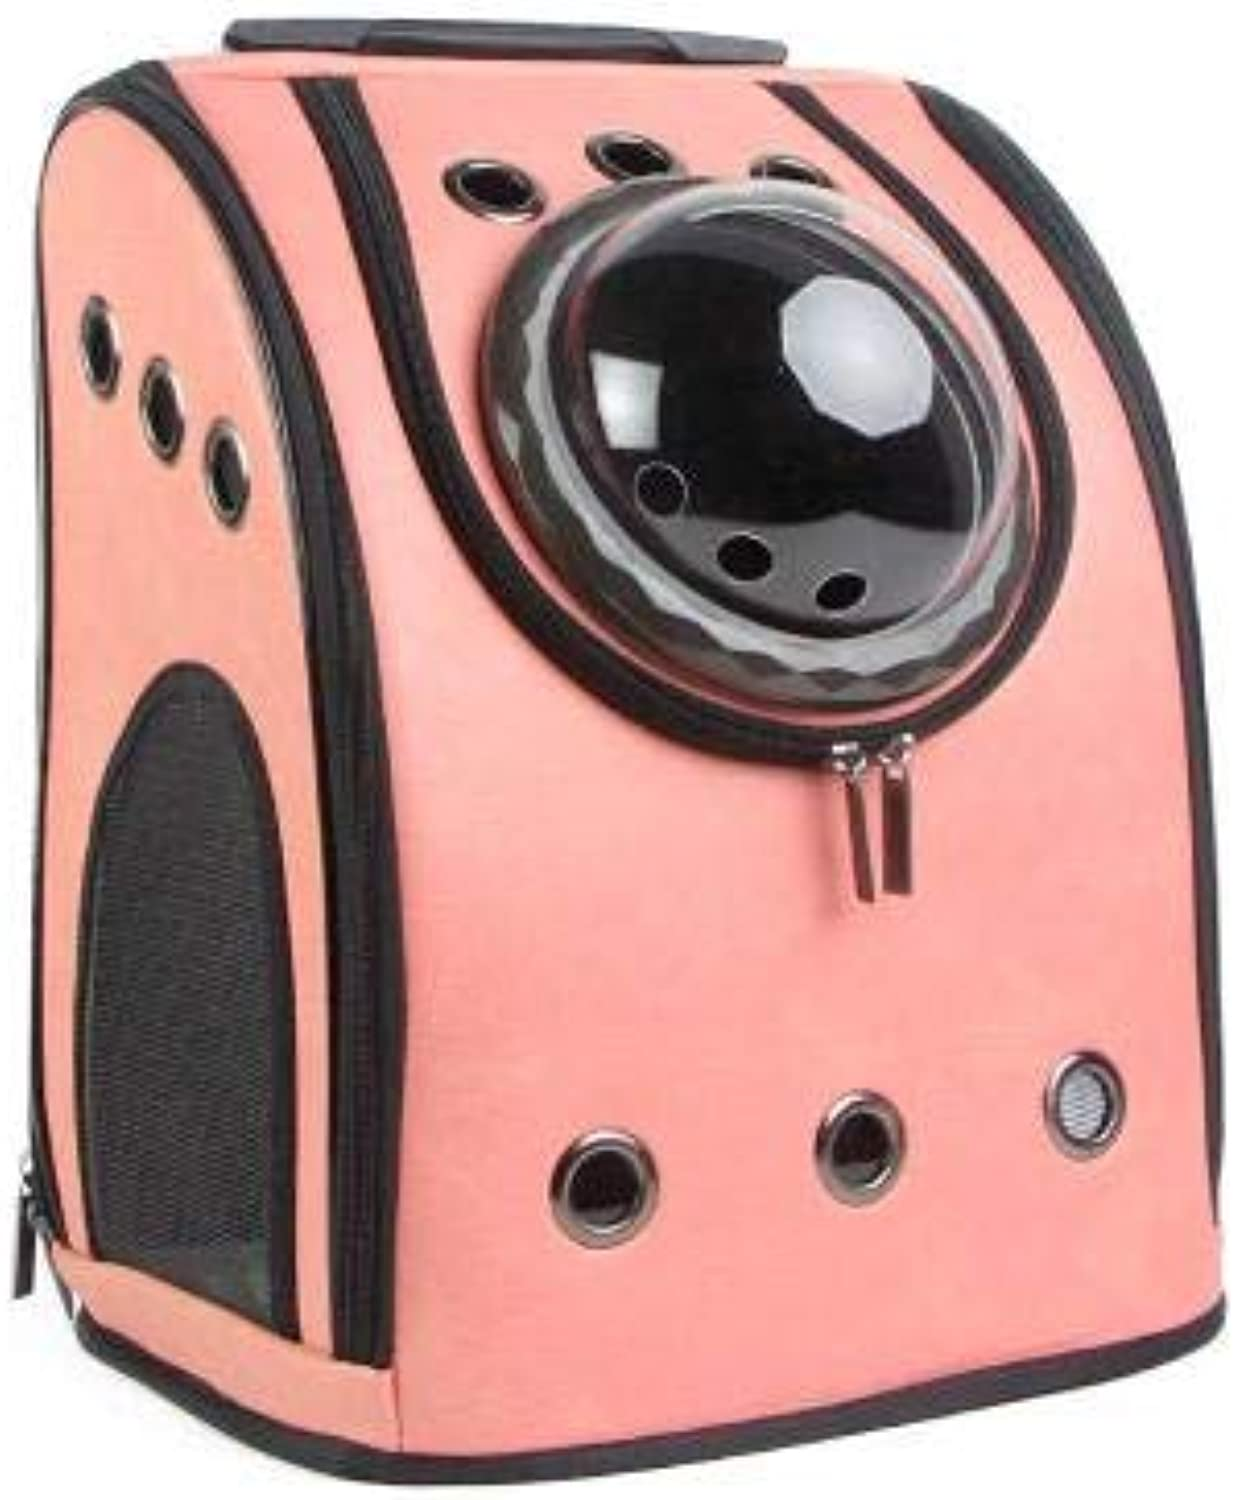 CHEN. Pet bag Space pet cabin bag out portable dog bag cat bag shoulders breathable big cat bag travel space bag pet supplies,Pink,32  26  42cm